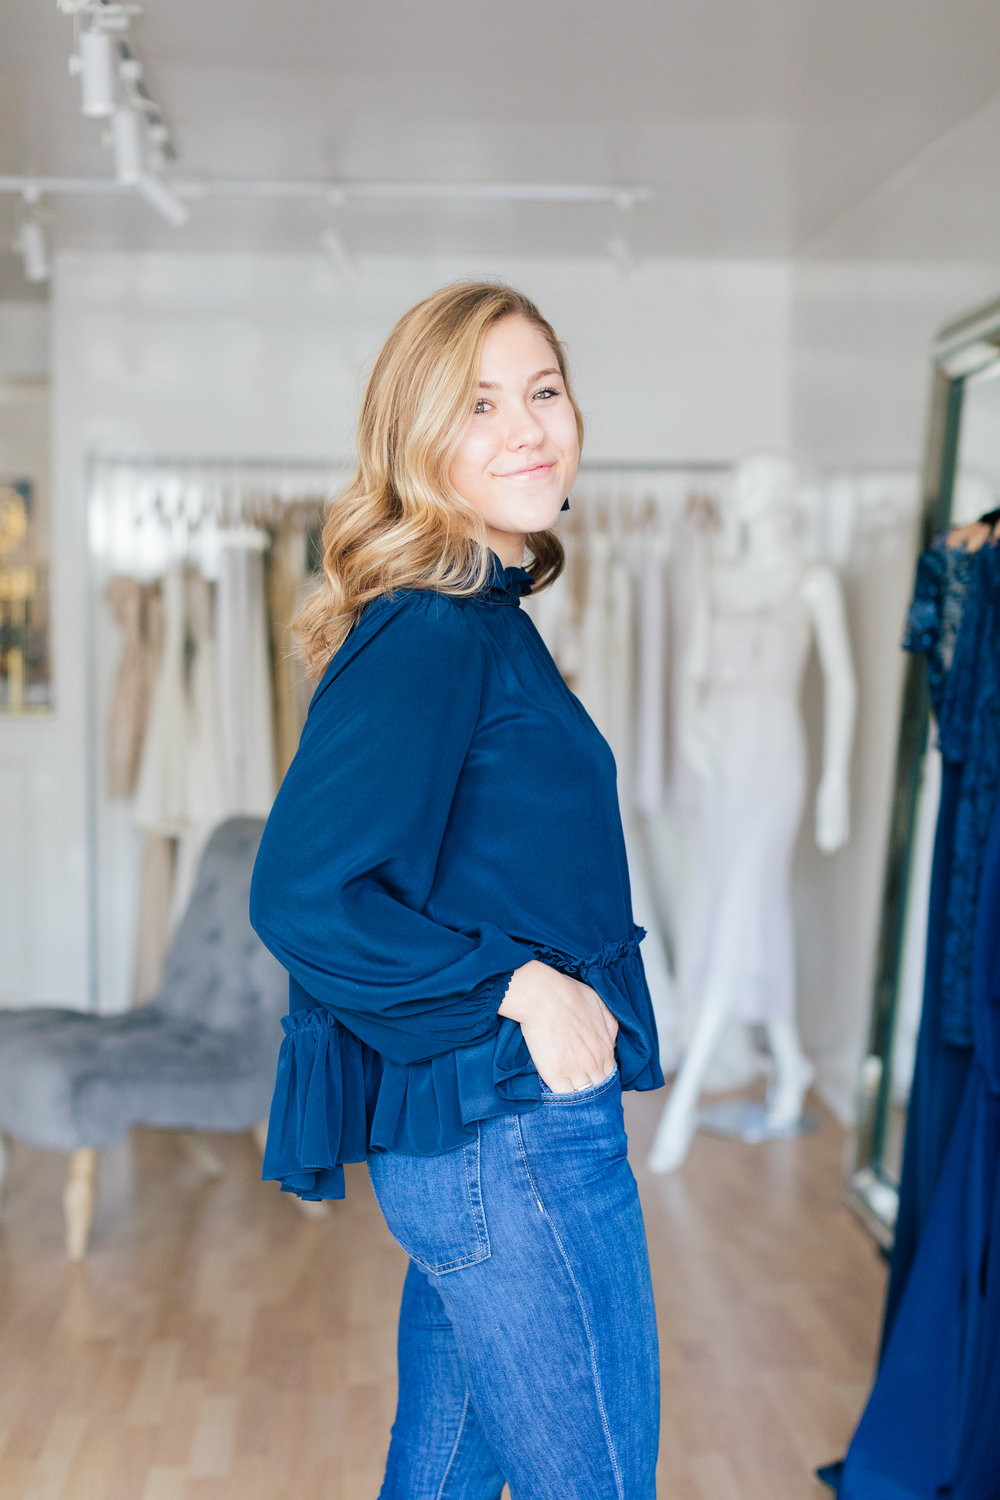 A Fall must-have...explore different ways to style the Rory Top, available at the Boutique! Made of luxurious silk crepe de chine, the Rory Top is perfect for your day into night wardrobe. Just pop on a pair of heels and a change of accessories!